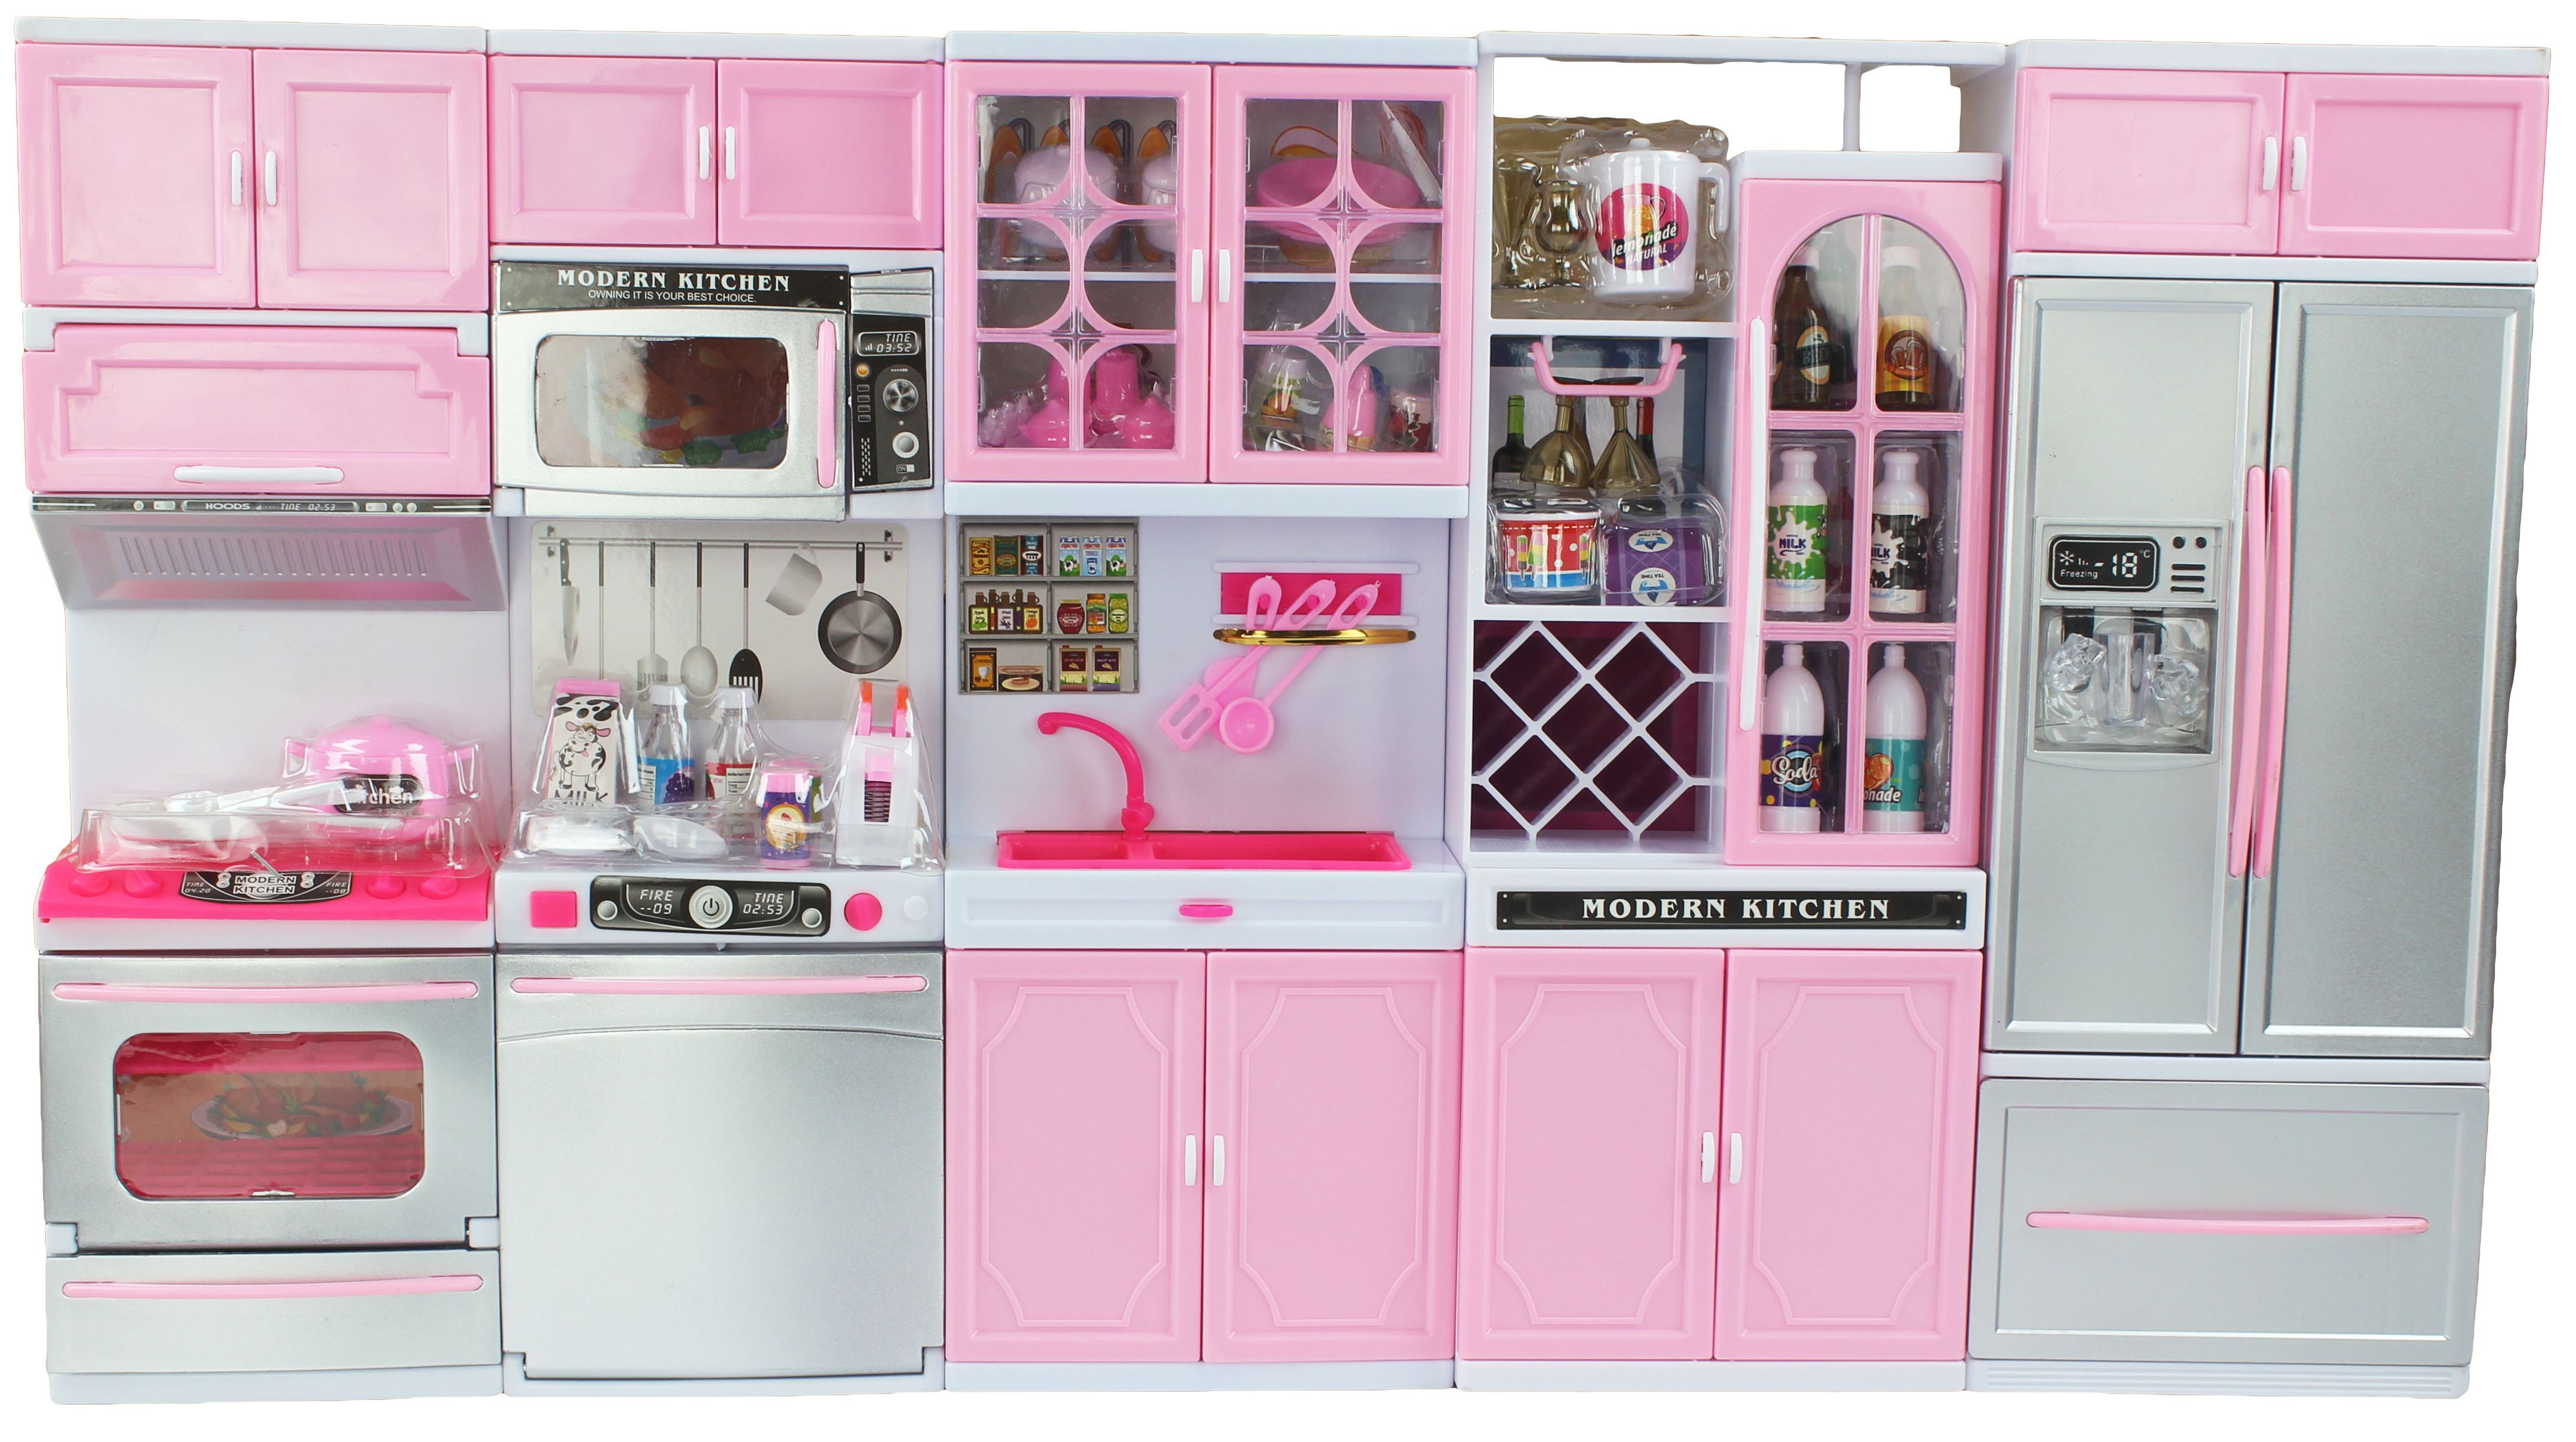 Battery Operated 12 Tall Large Luxurious Toy Kitchen Playset 11 12 Tall Dolls Sounds Parts Light Up Perfect Doll House Accessory Walmart Com Toy Kitchen Barbie Kitchen Set Barbie Kitchen